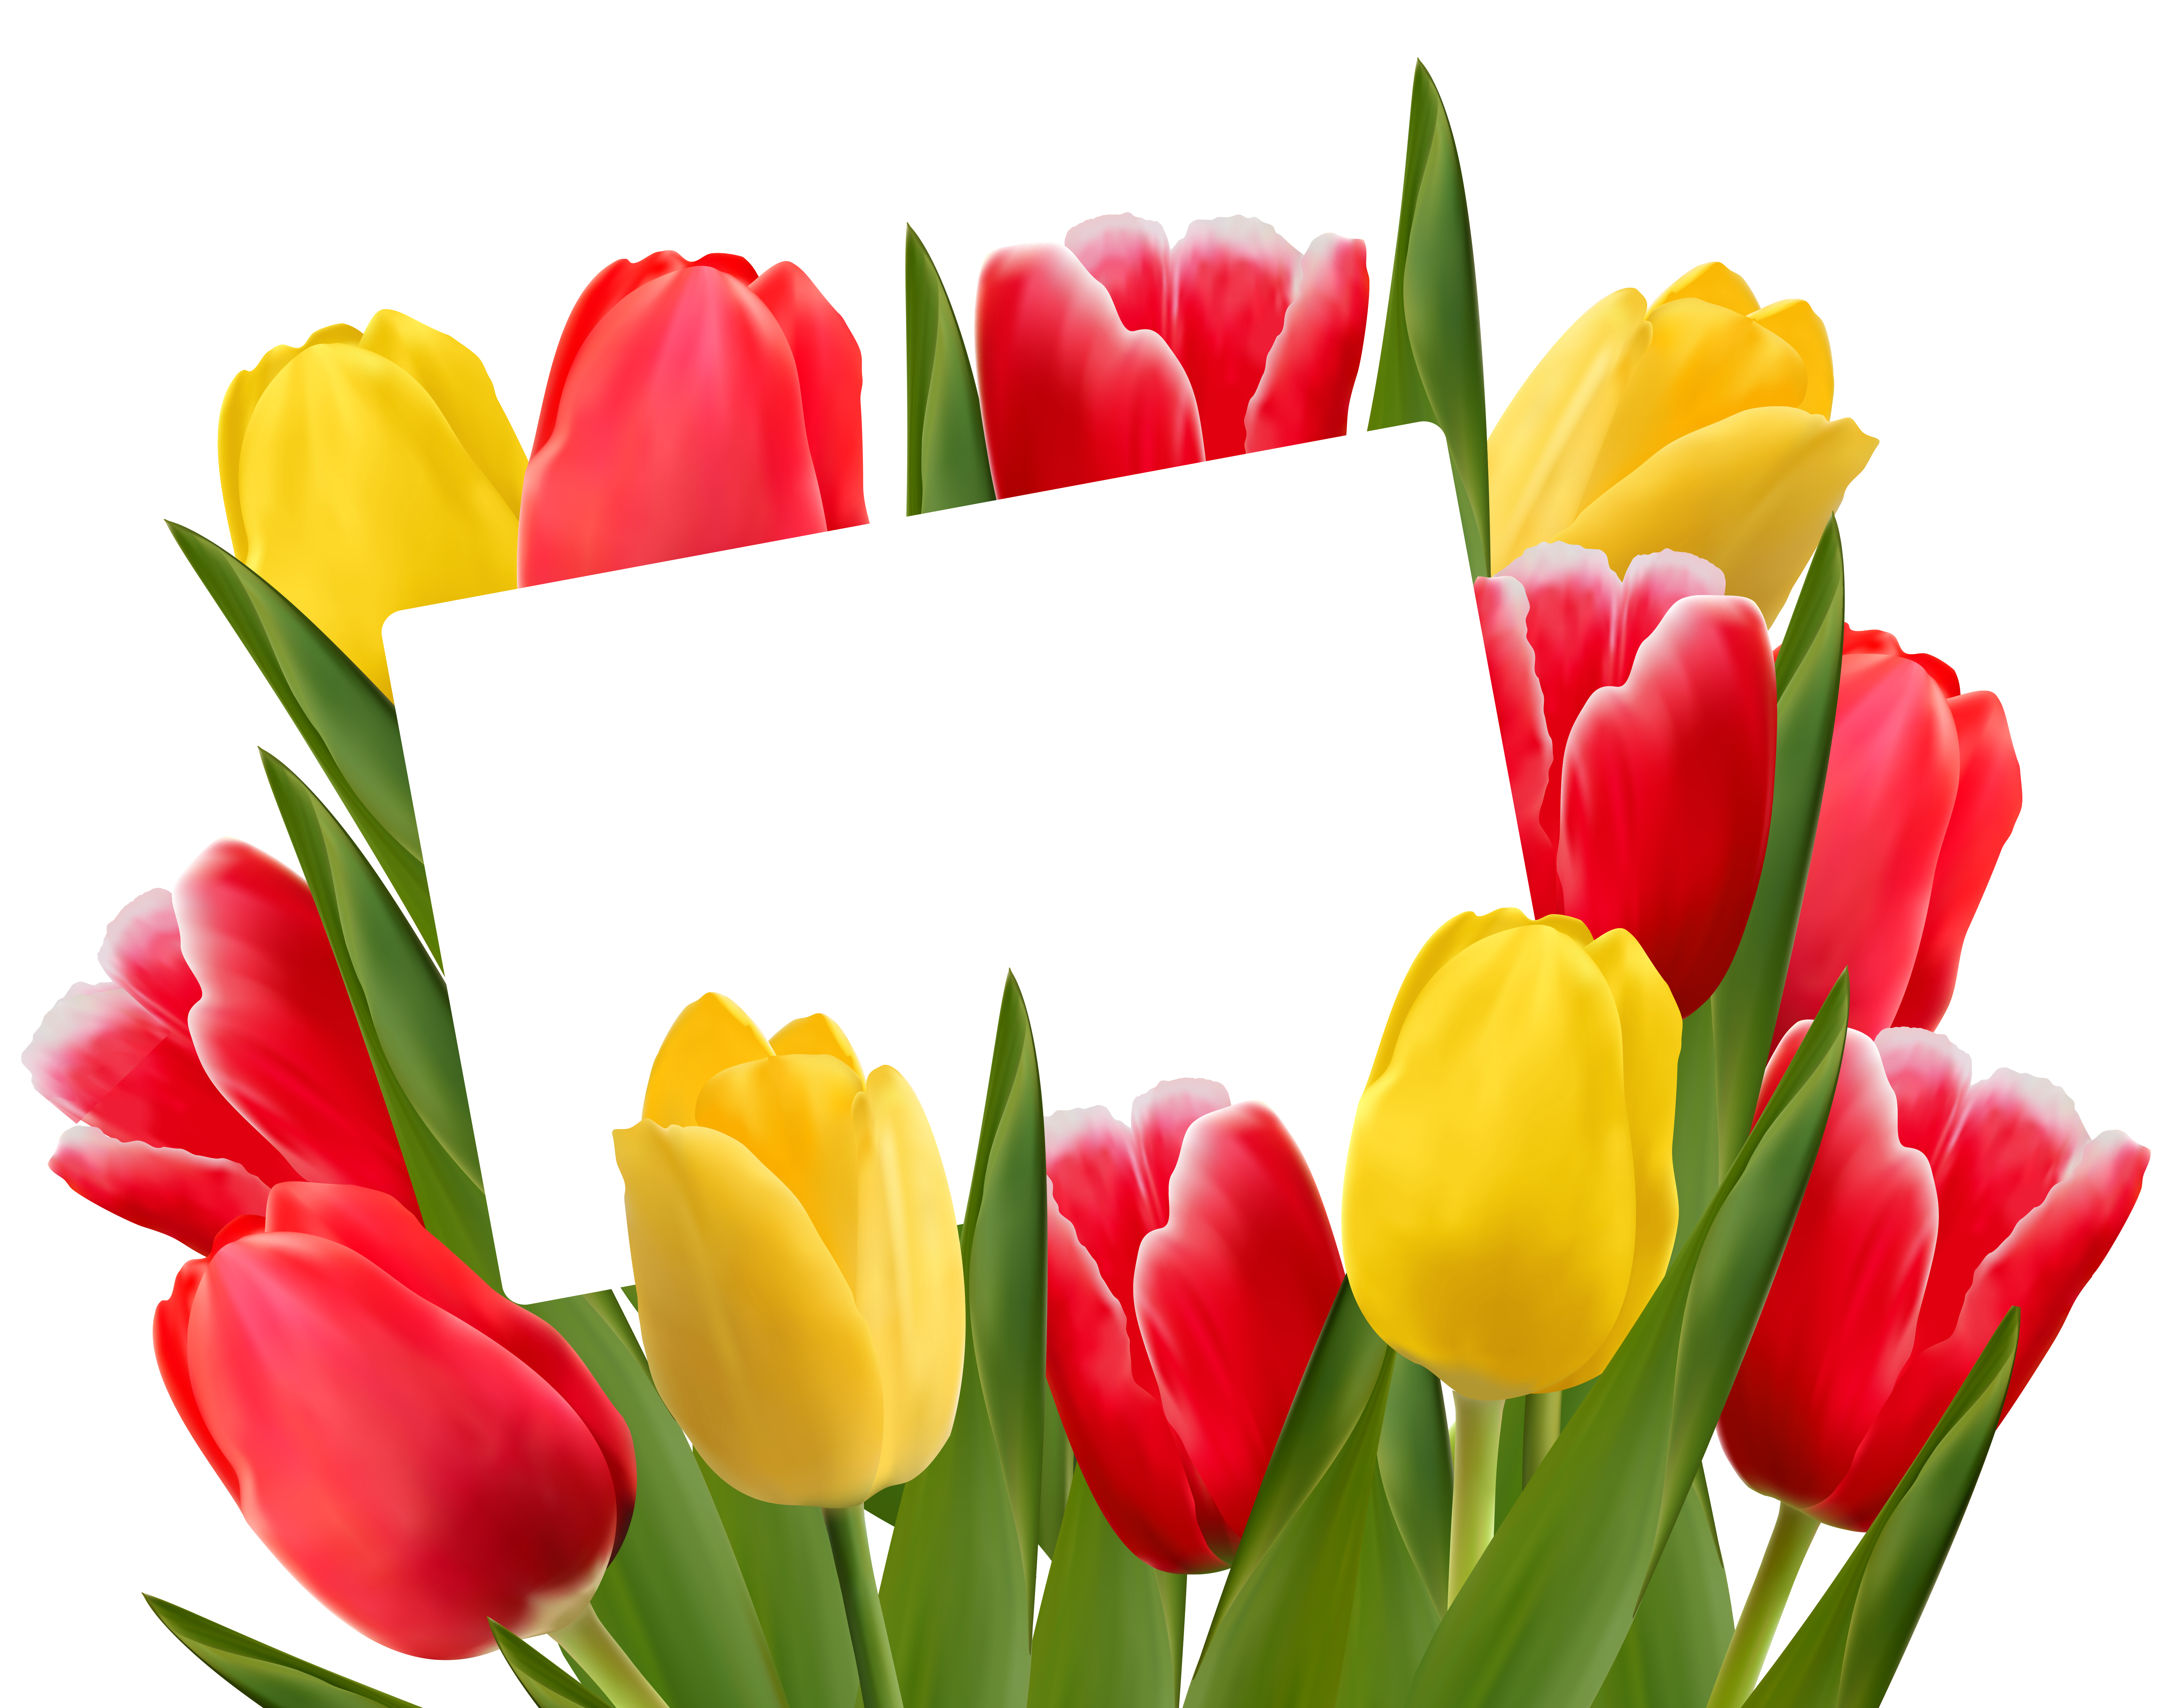 6373x5011 Transparent Red And Yellow Tulips Decoration Png Clipart Picture